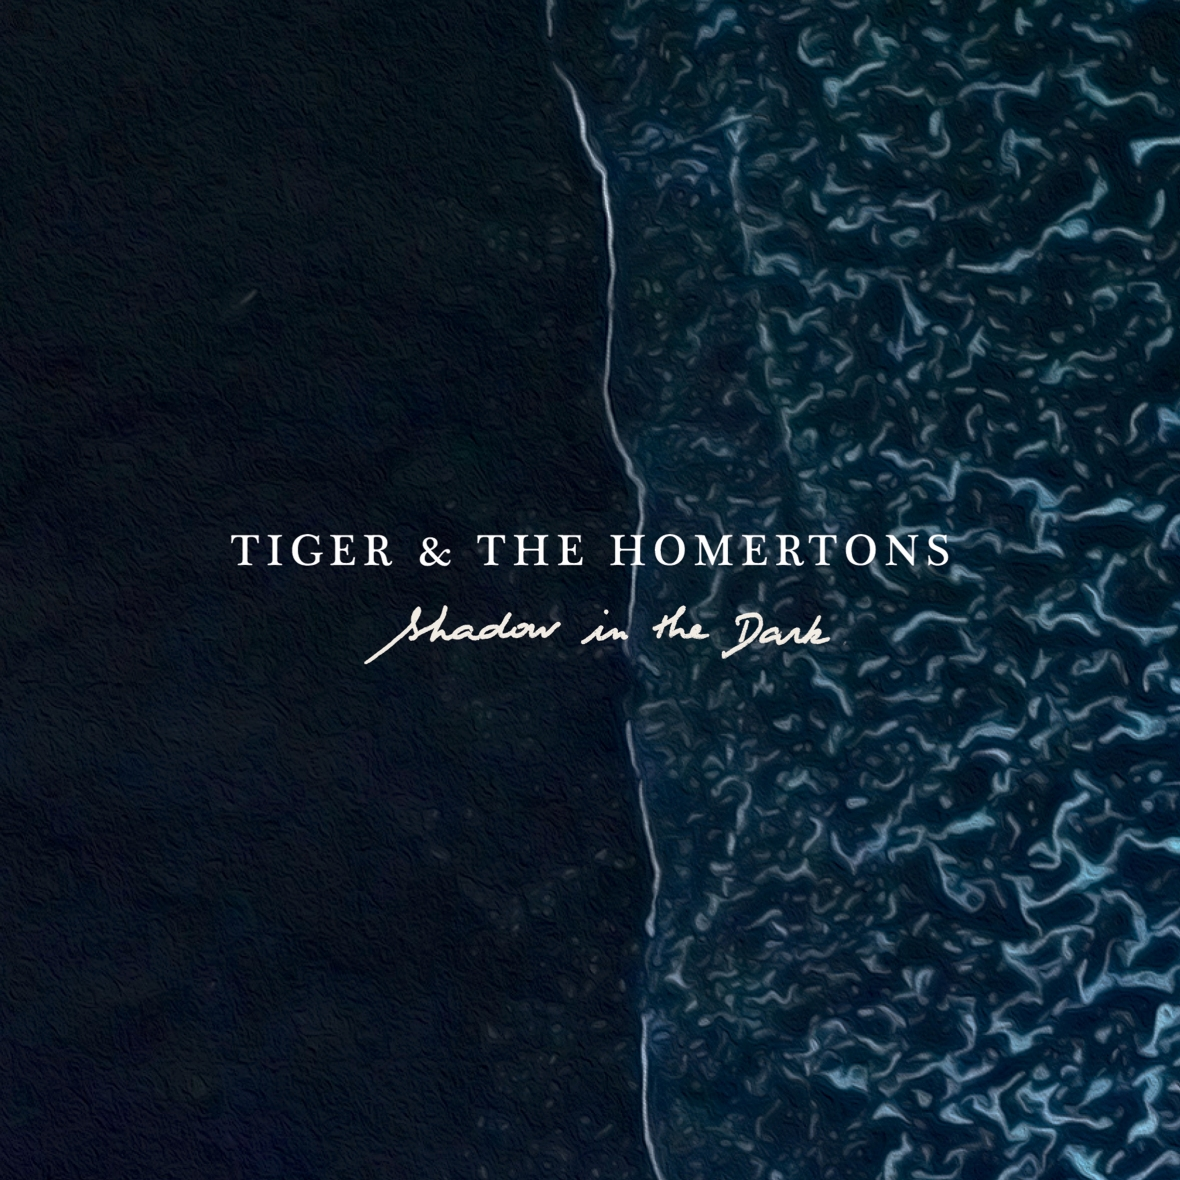 Tiger & The Homertons - Shadow in the dark